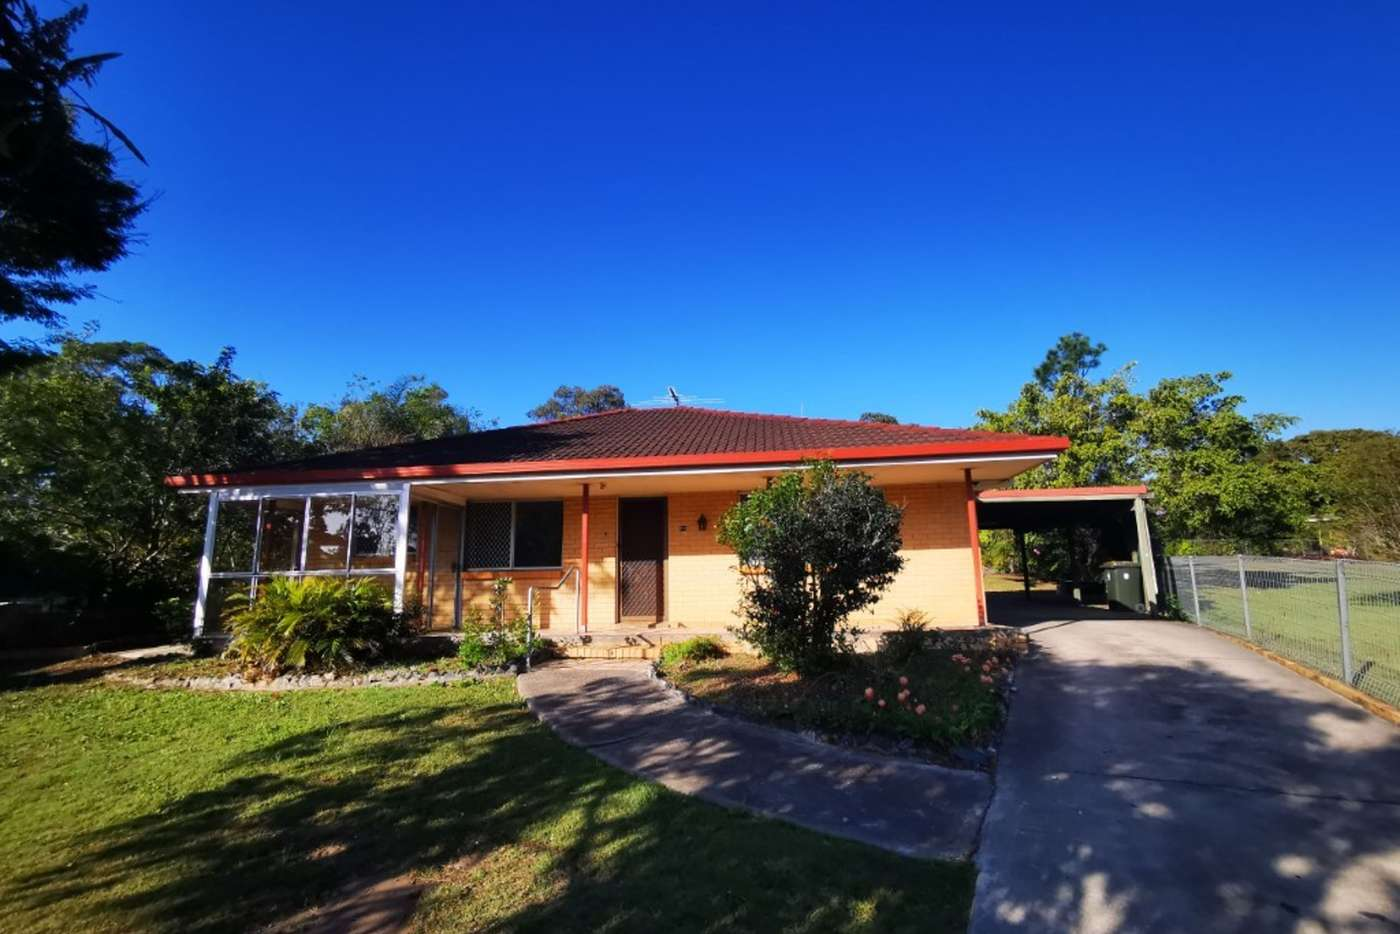 Main view of Homely house listing, 70 Keats street, Sunnybank QLD 4109